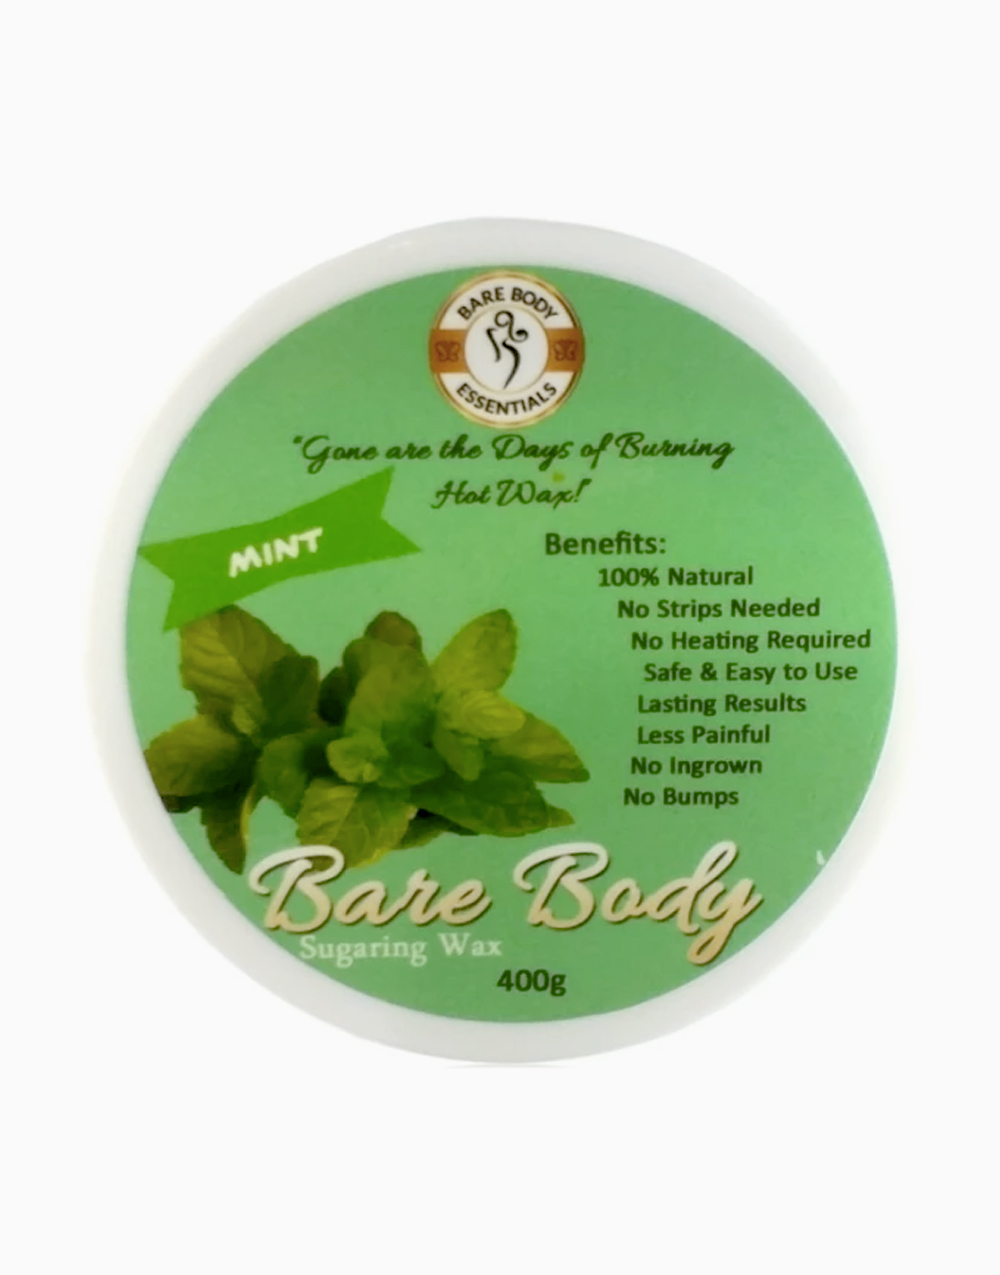 Bare Body Sugaring Wax (400g) by Bare Body Essentials | Mint